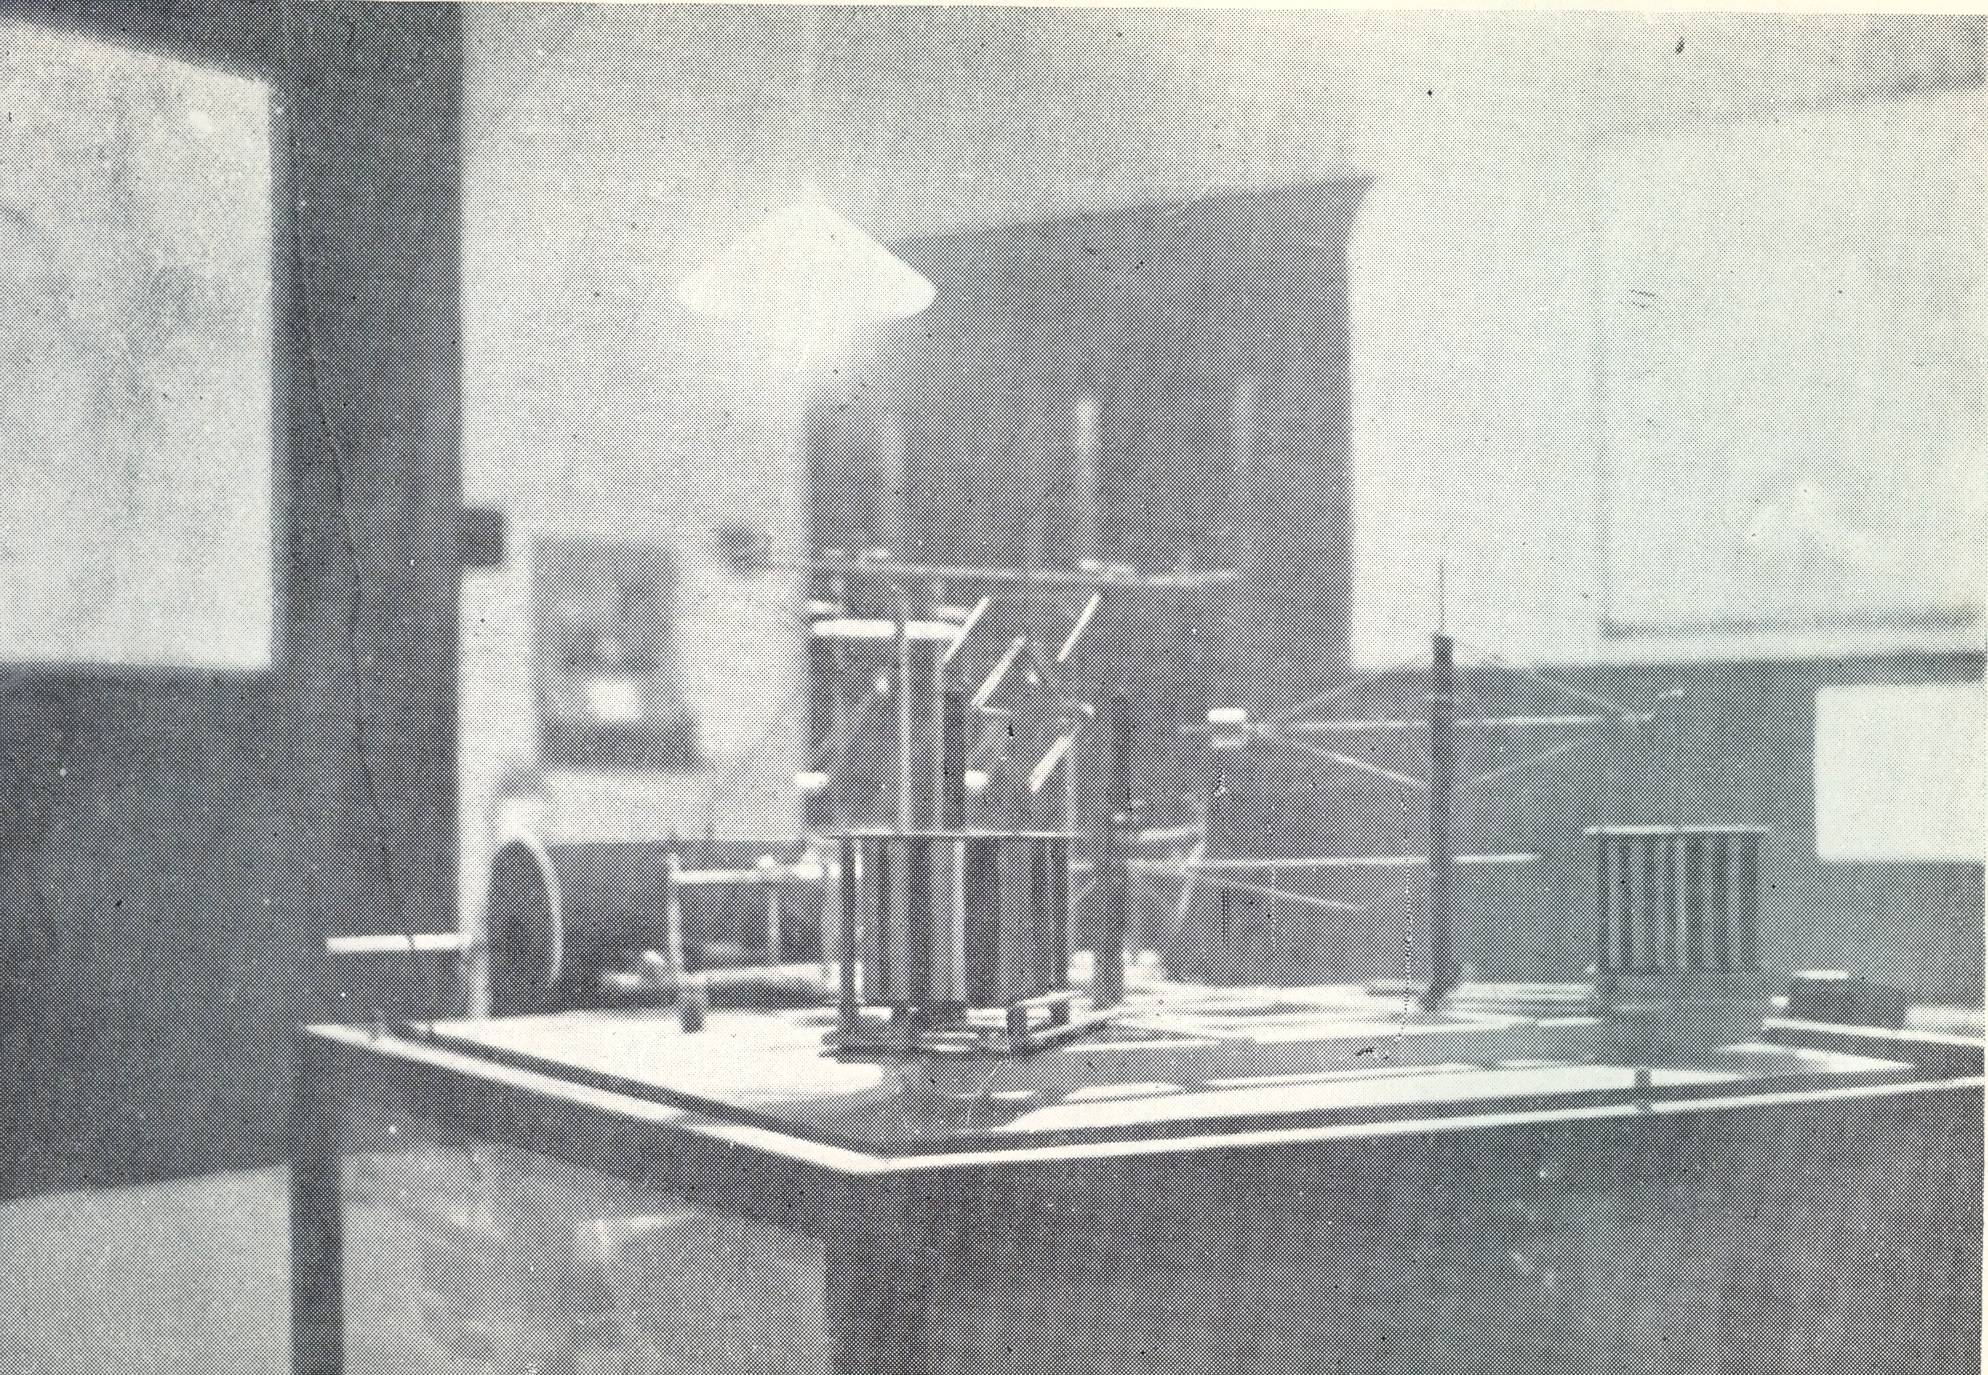 In 1932, a Milne-Shaw seismograph was obtained to replace the 'O Leary seismograph'. Courtesy of the Irish Jesuit Archive.